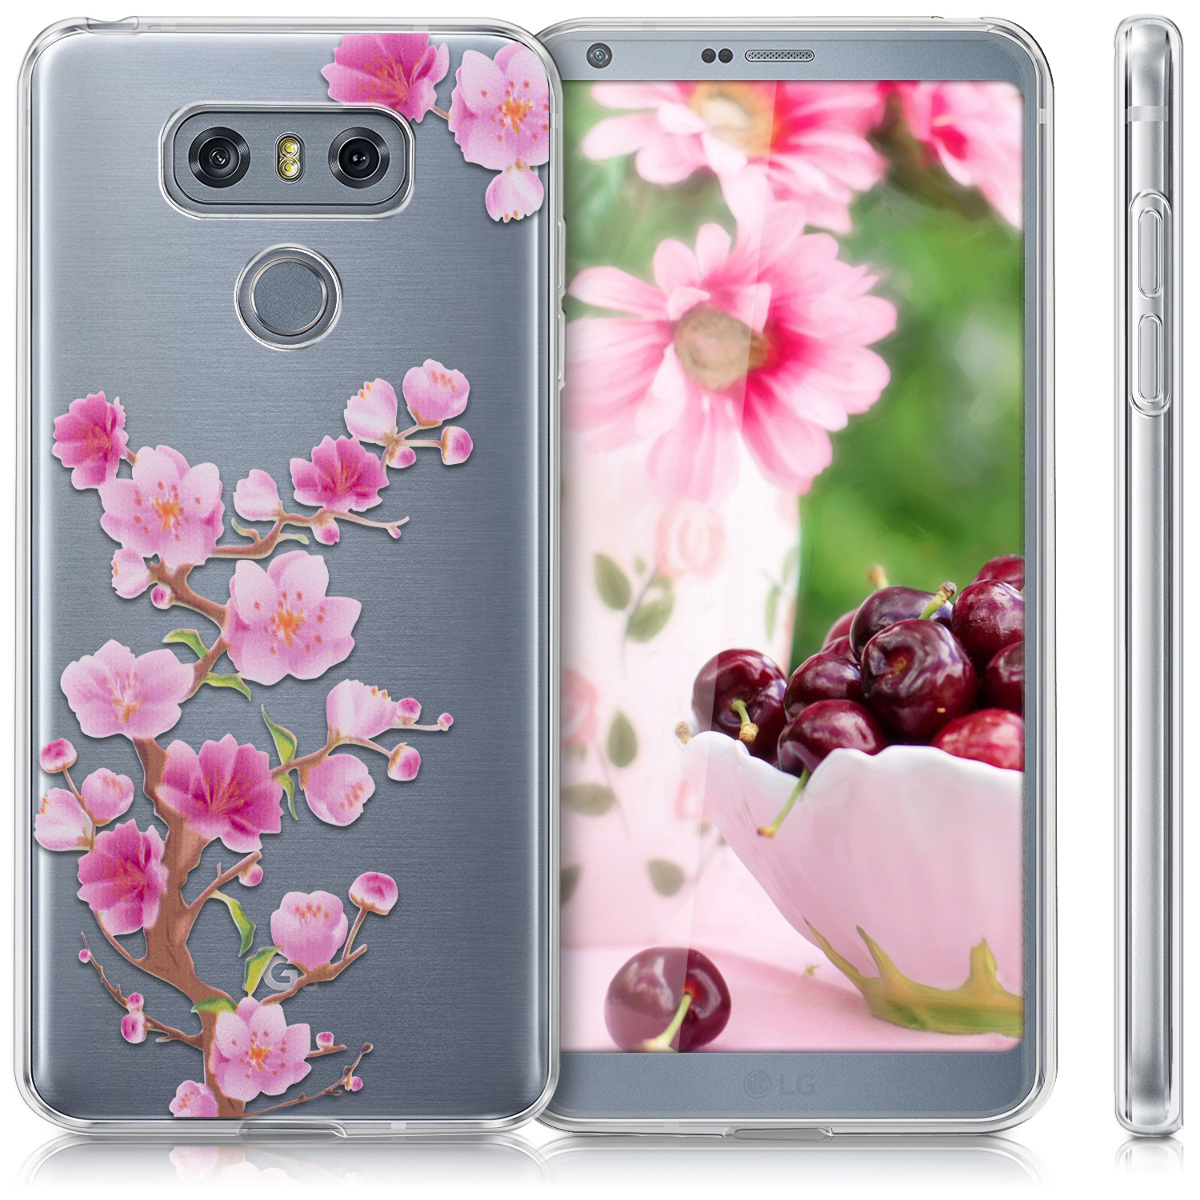 Housse de protection pour lg g6 tpu silicone tui prot ge for Housse lg g6